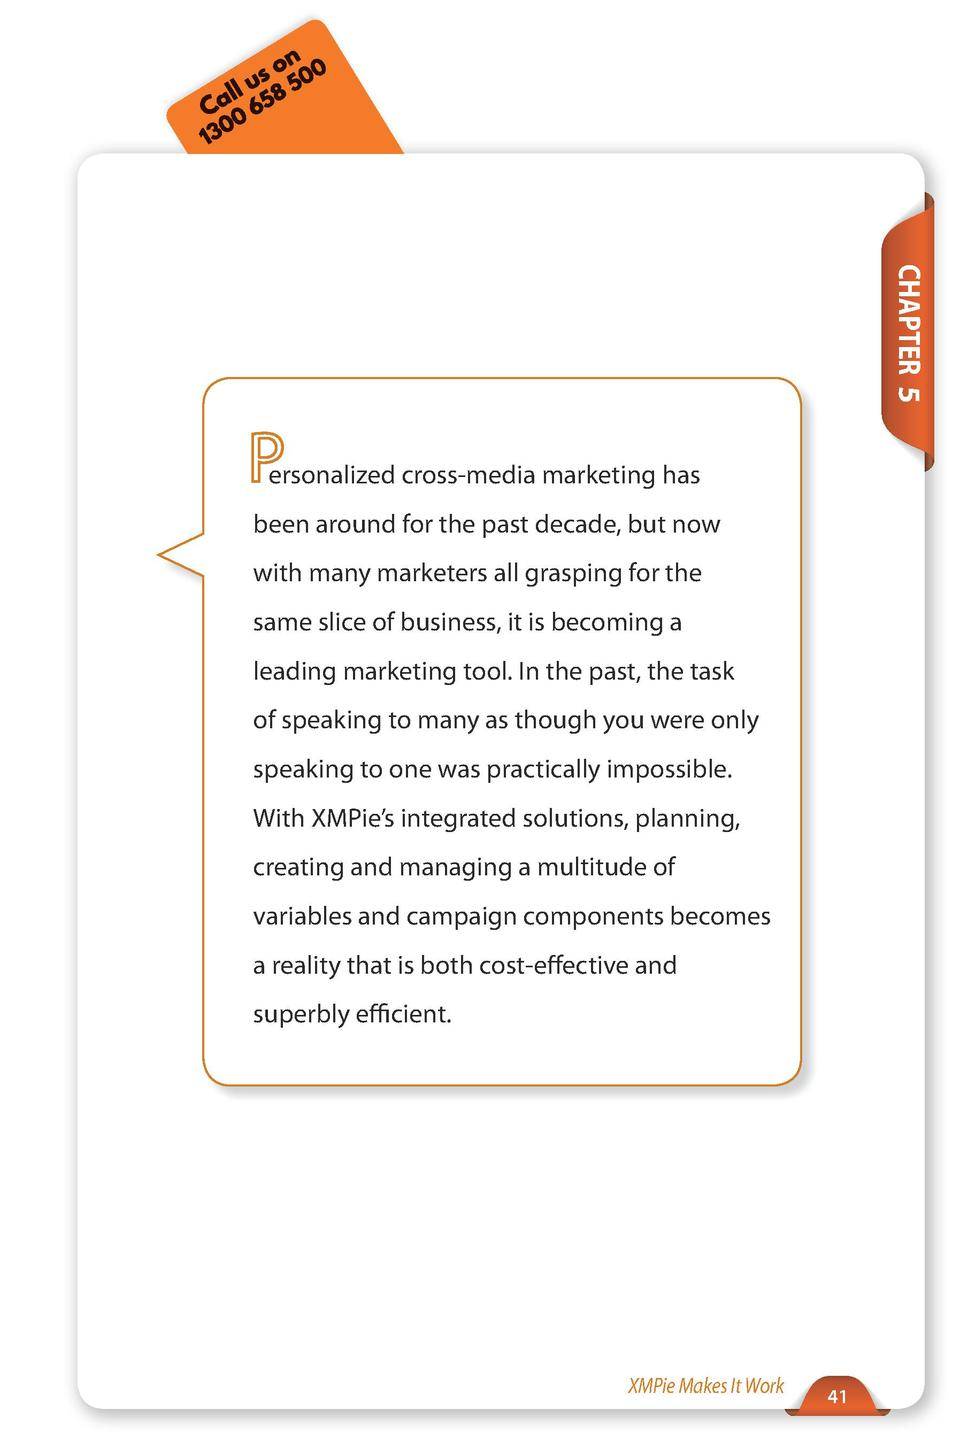 Call Us  Tel  212-479-5166  www.xmpie.com  CHAPTER 5  ersonalized cross-media marketing has been around for the past decad...